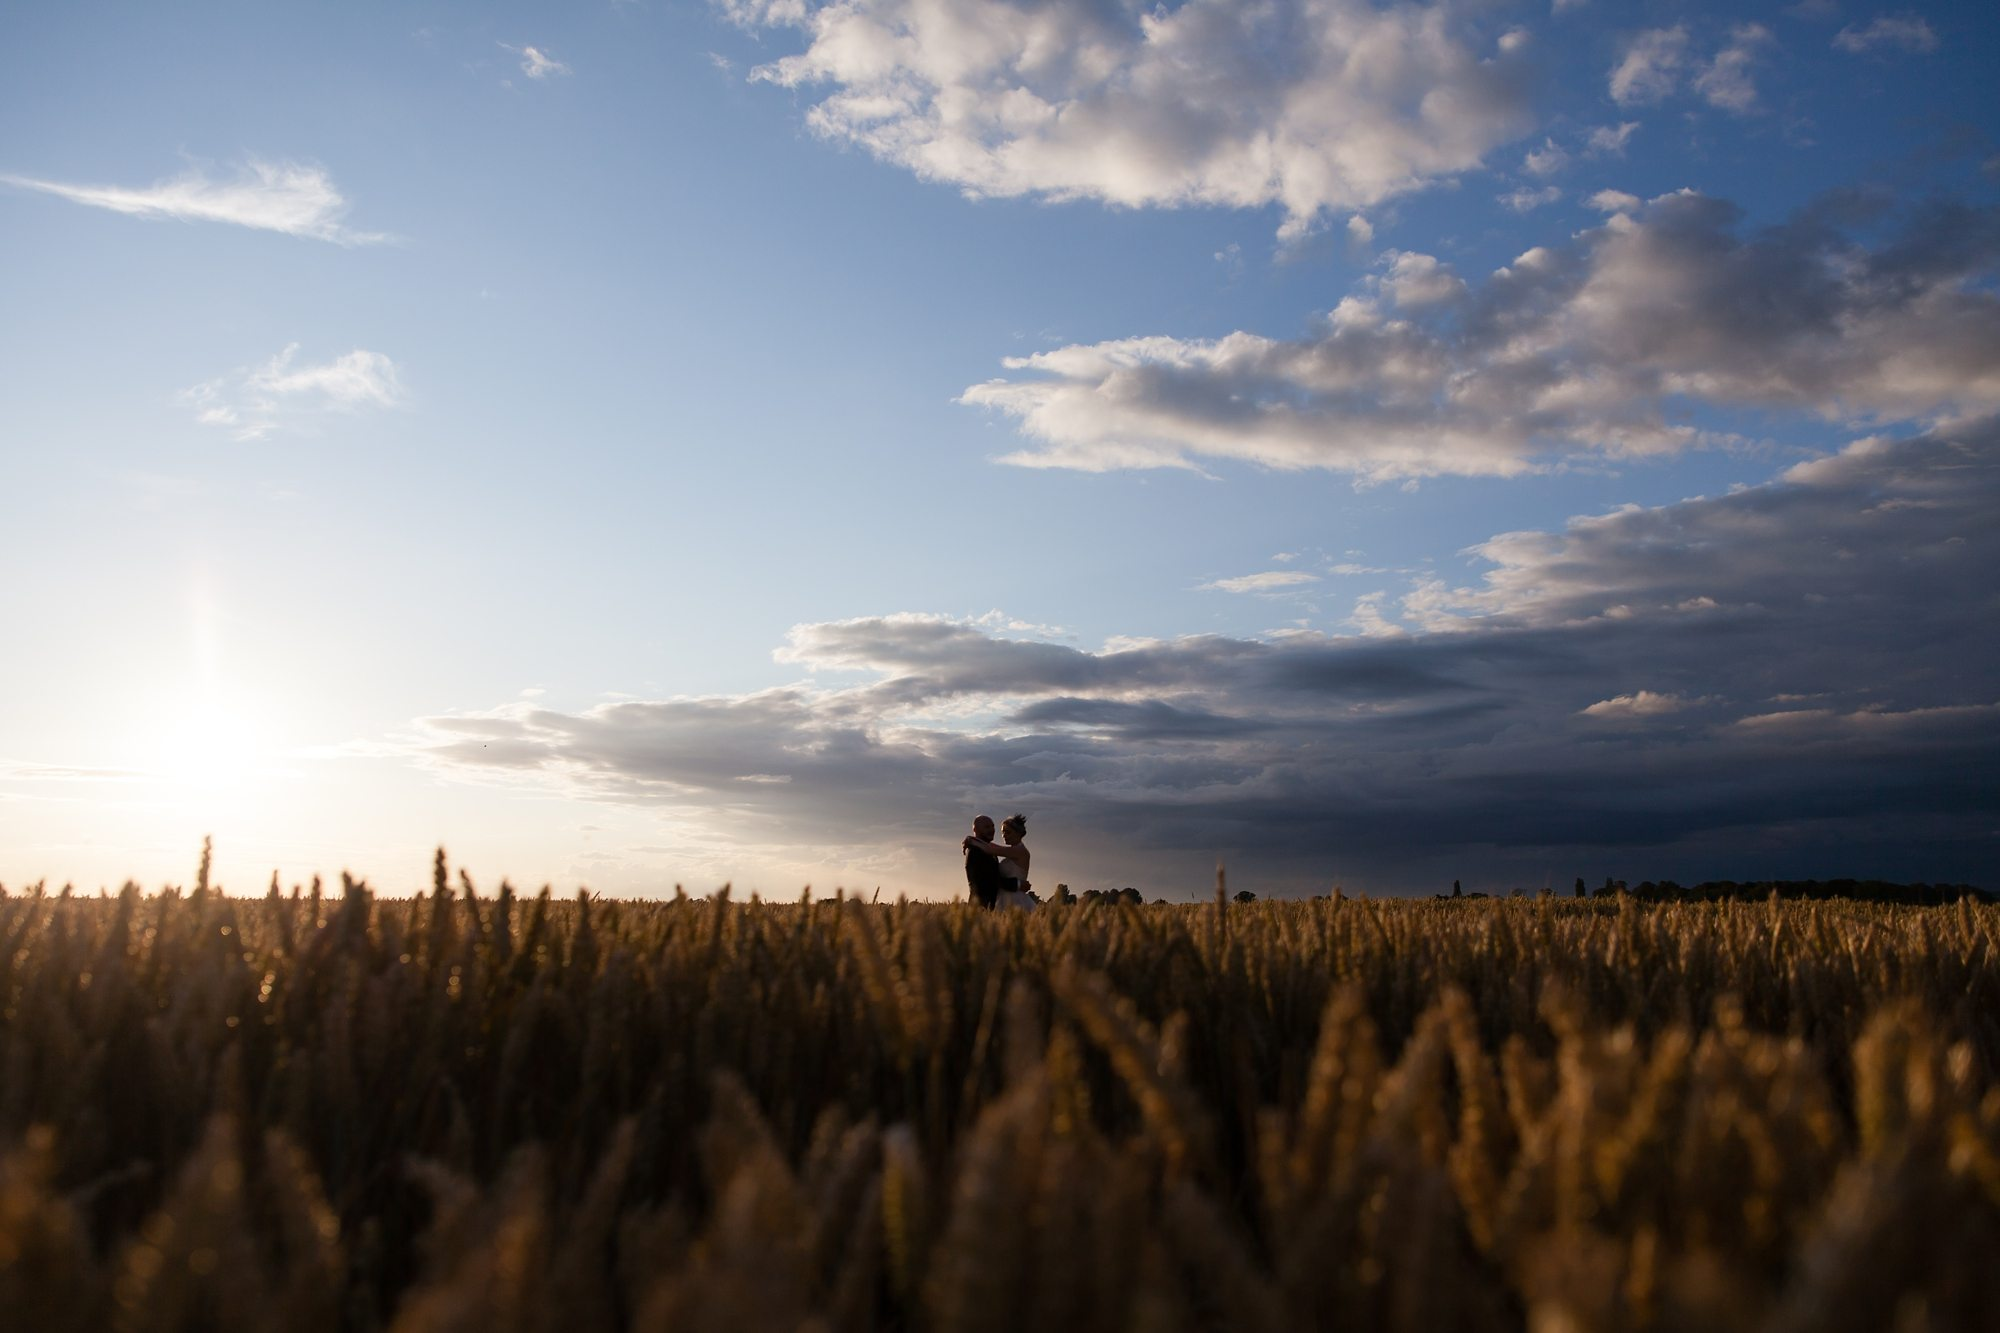 bride and groom hugging in siloet in cornfield under a blue sky